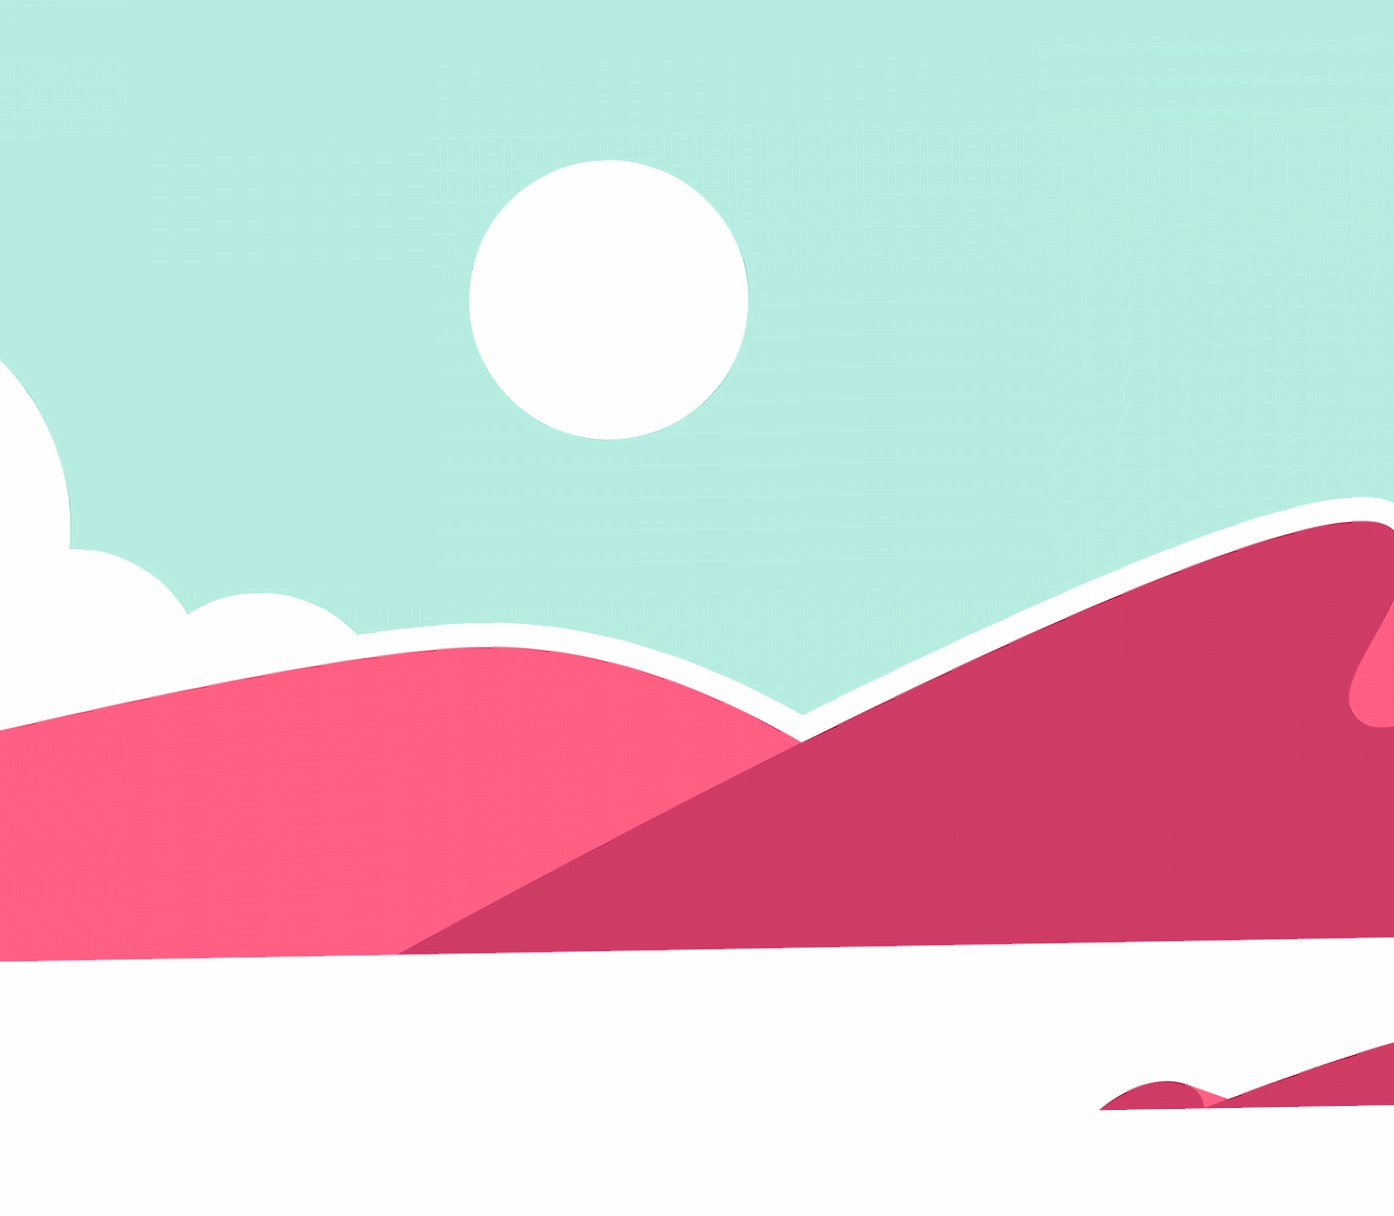 minimal landscape wallpapers HD quality